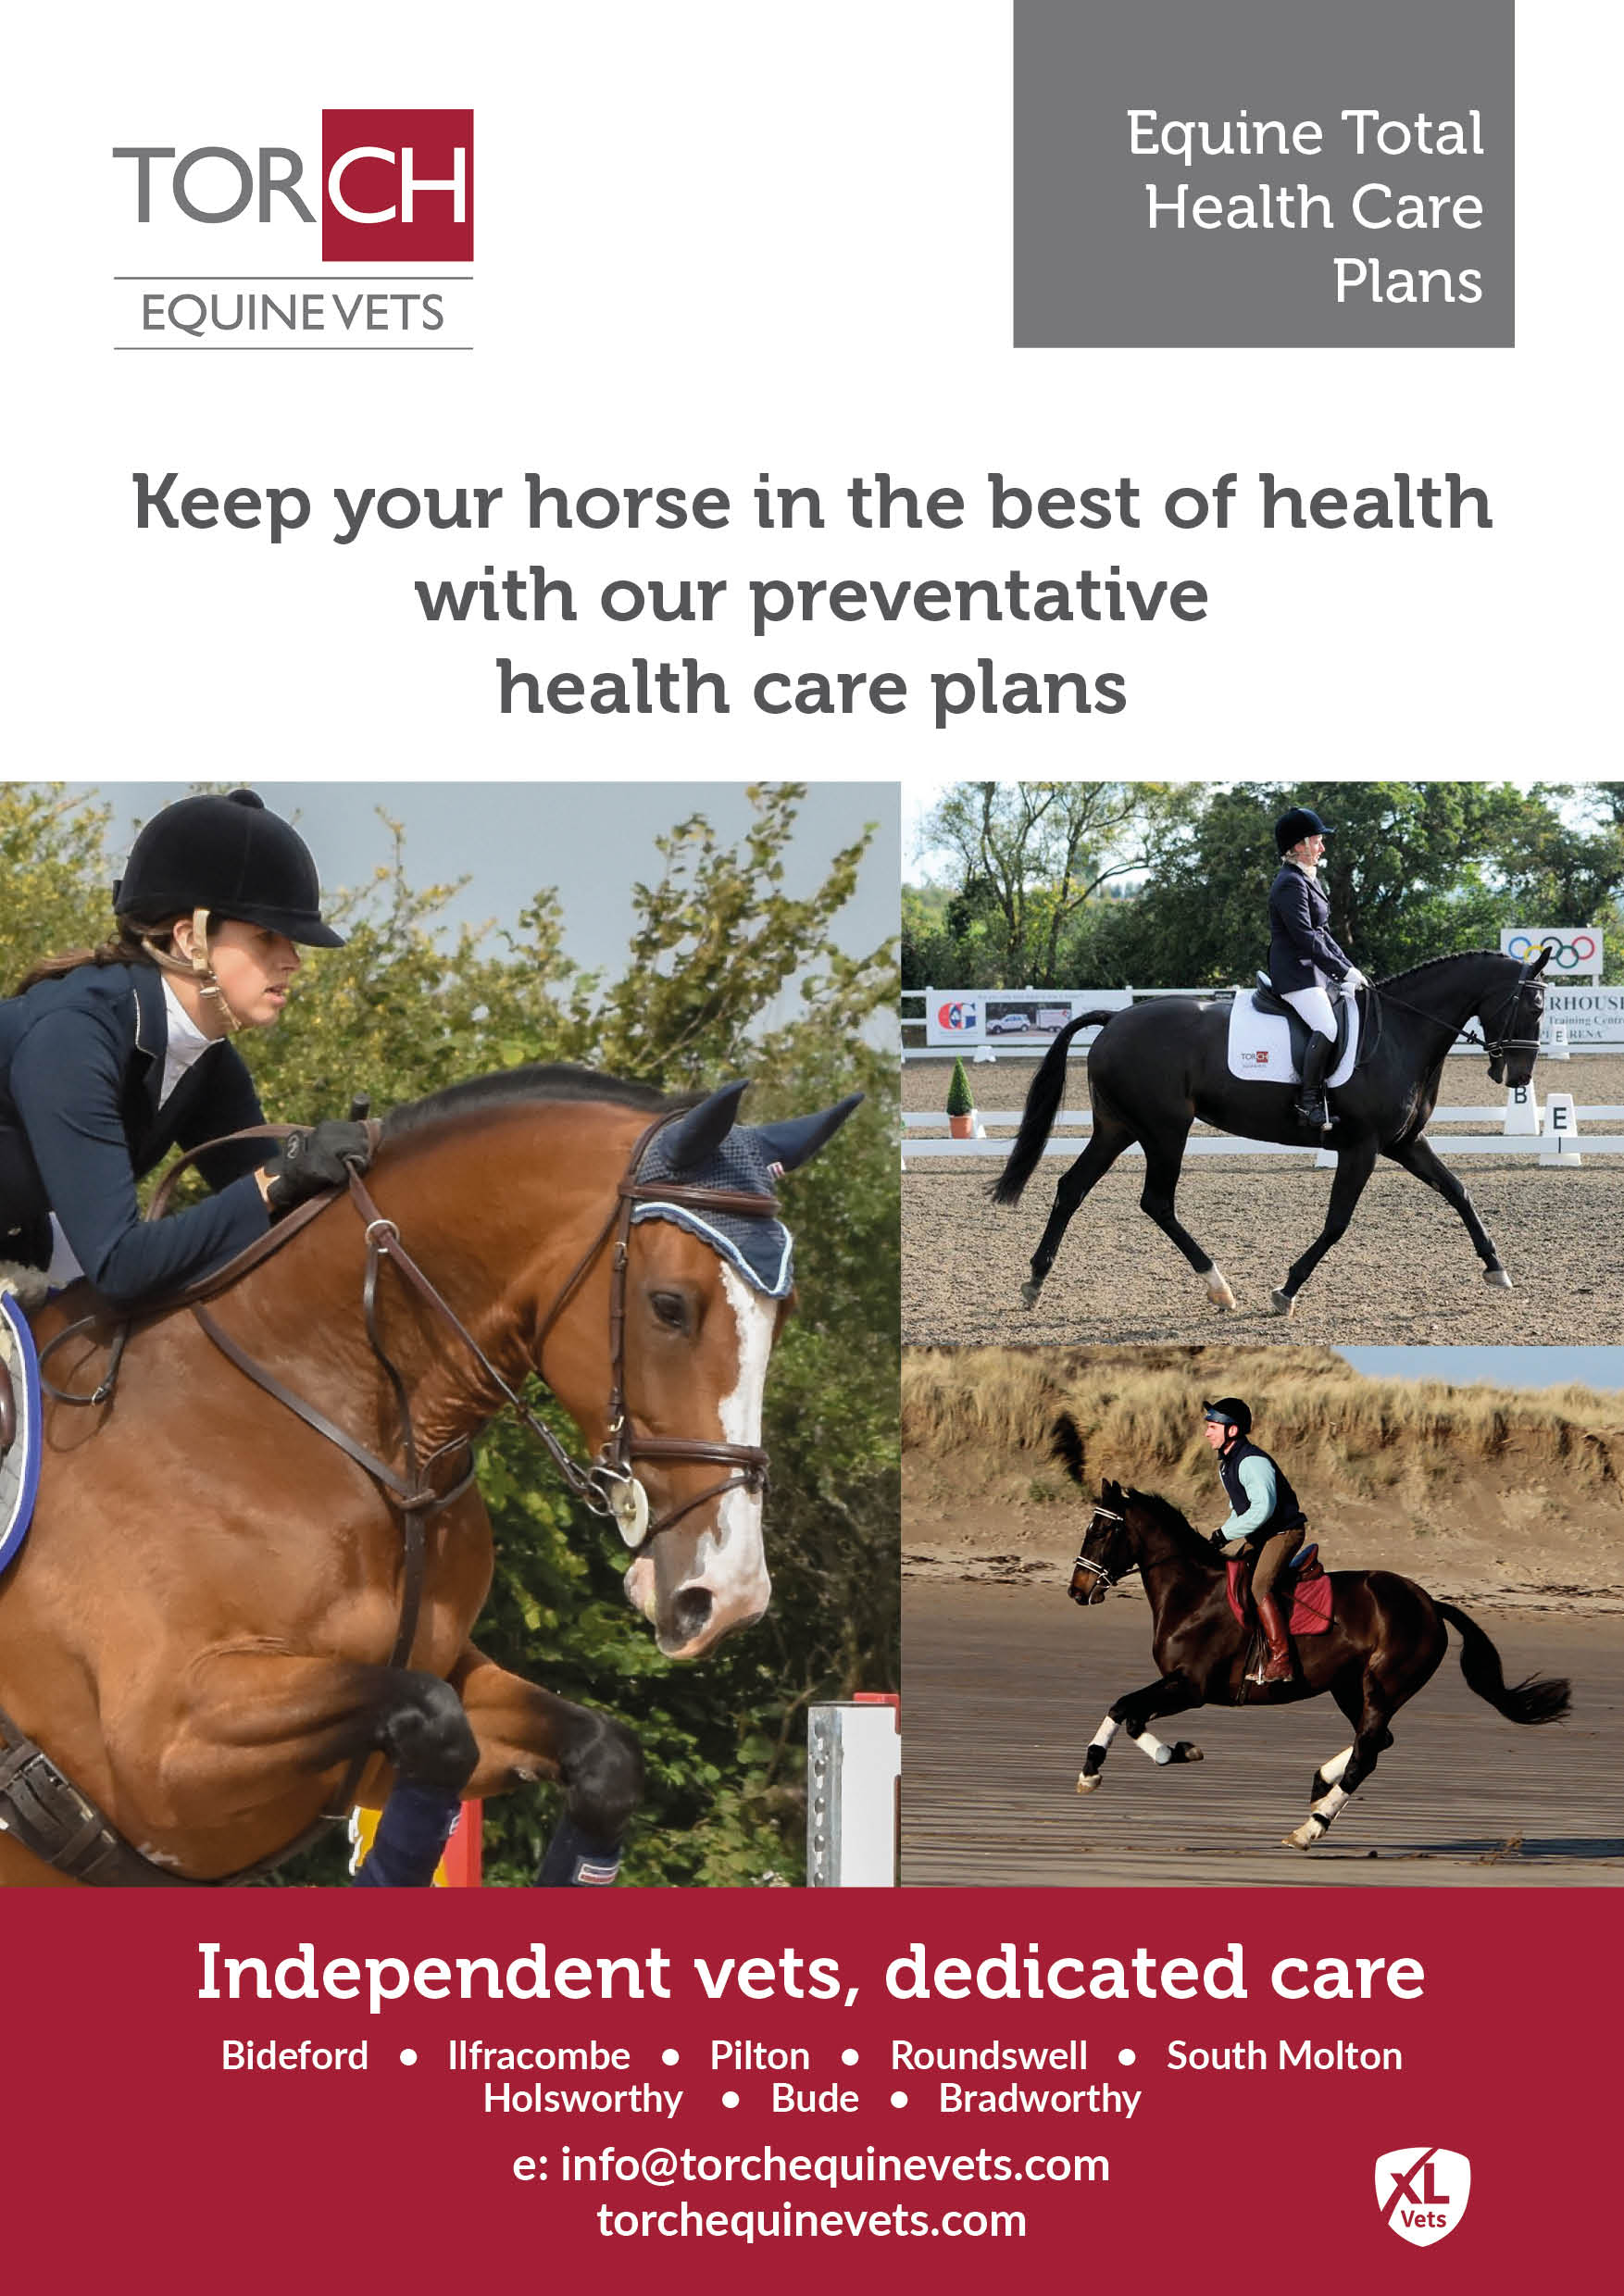 Torch Equine Vets - Equine Total Health Care Plans leaflet